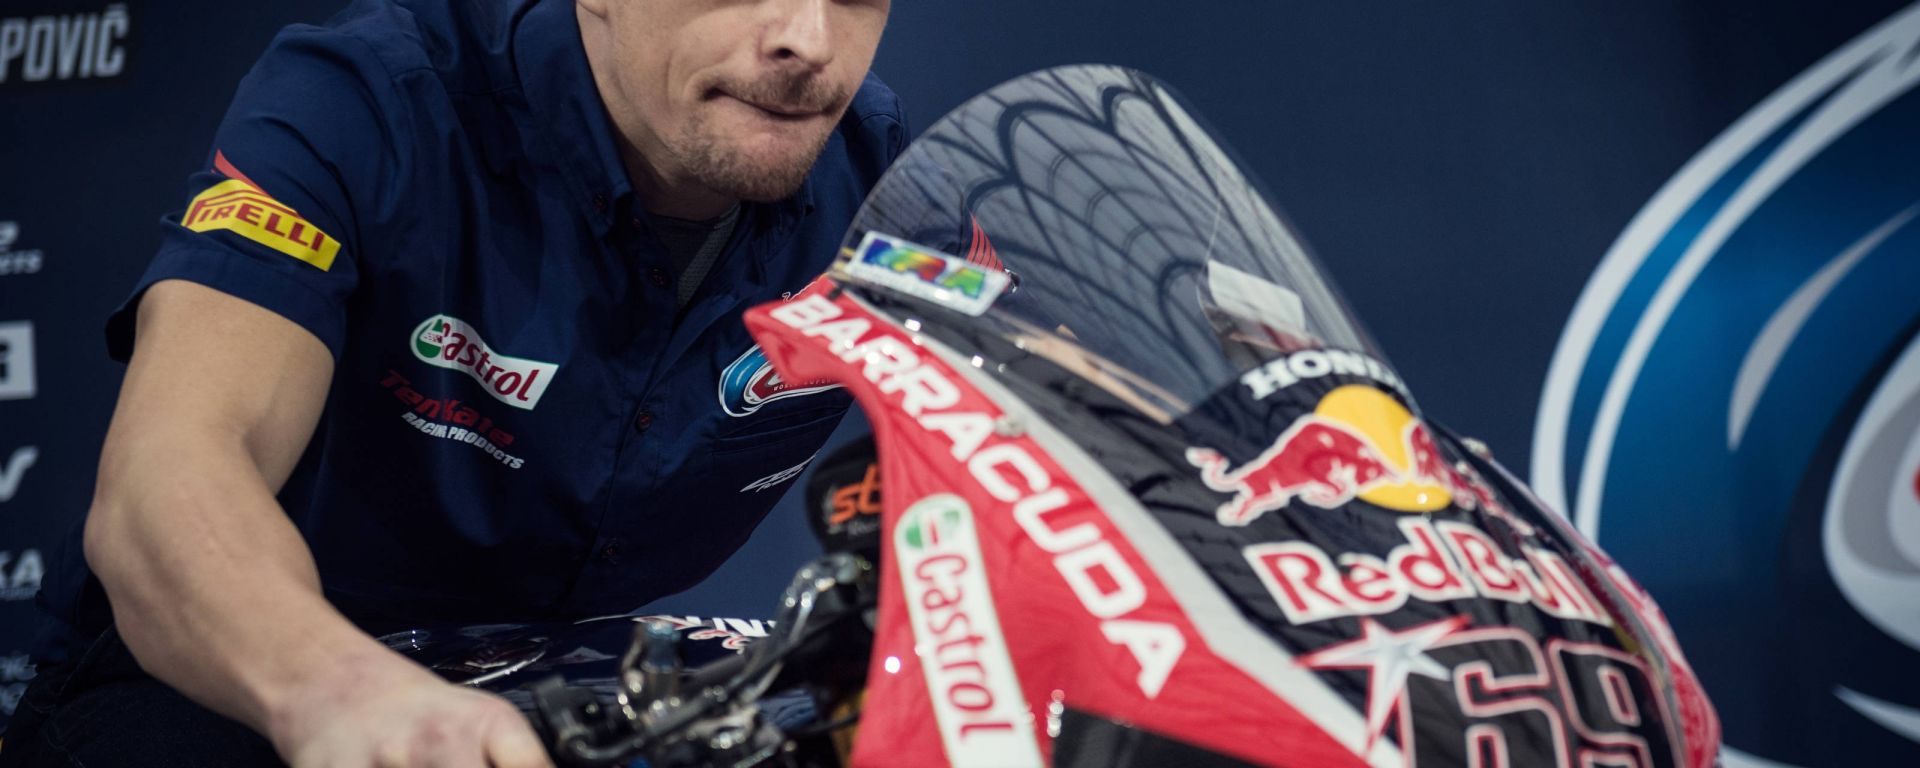 Grave incidente per Nicky Hayden